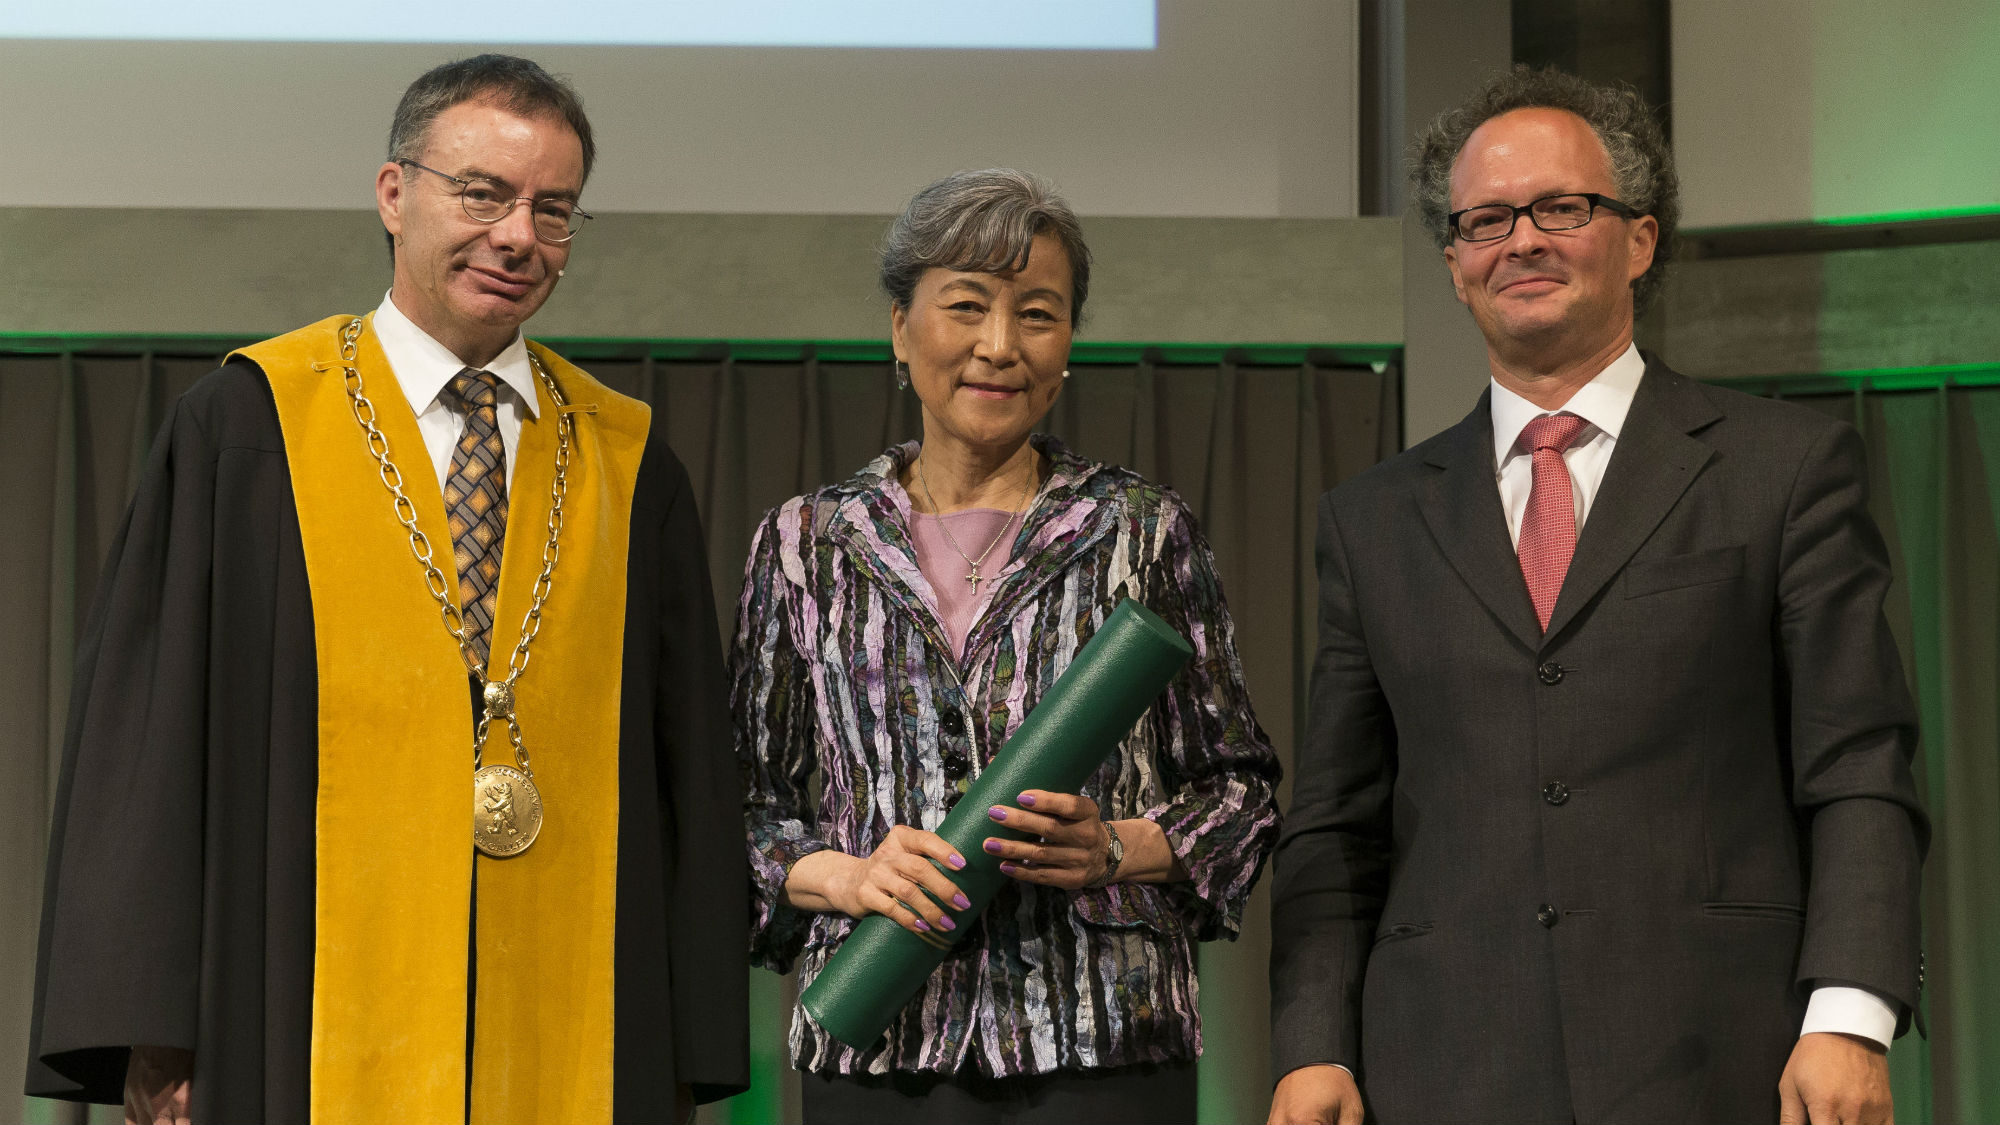 Thomas Bieger, Anne Tsui und Peter Leibfried at Dies